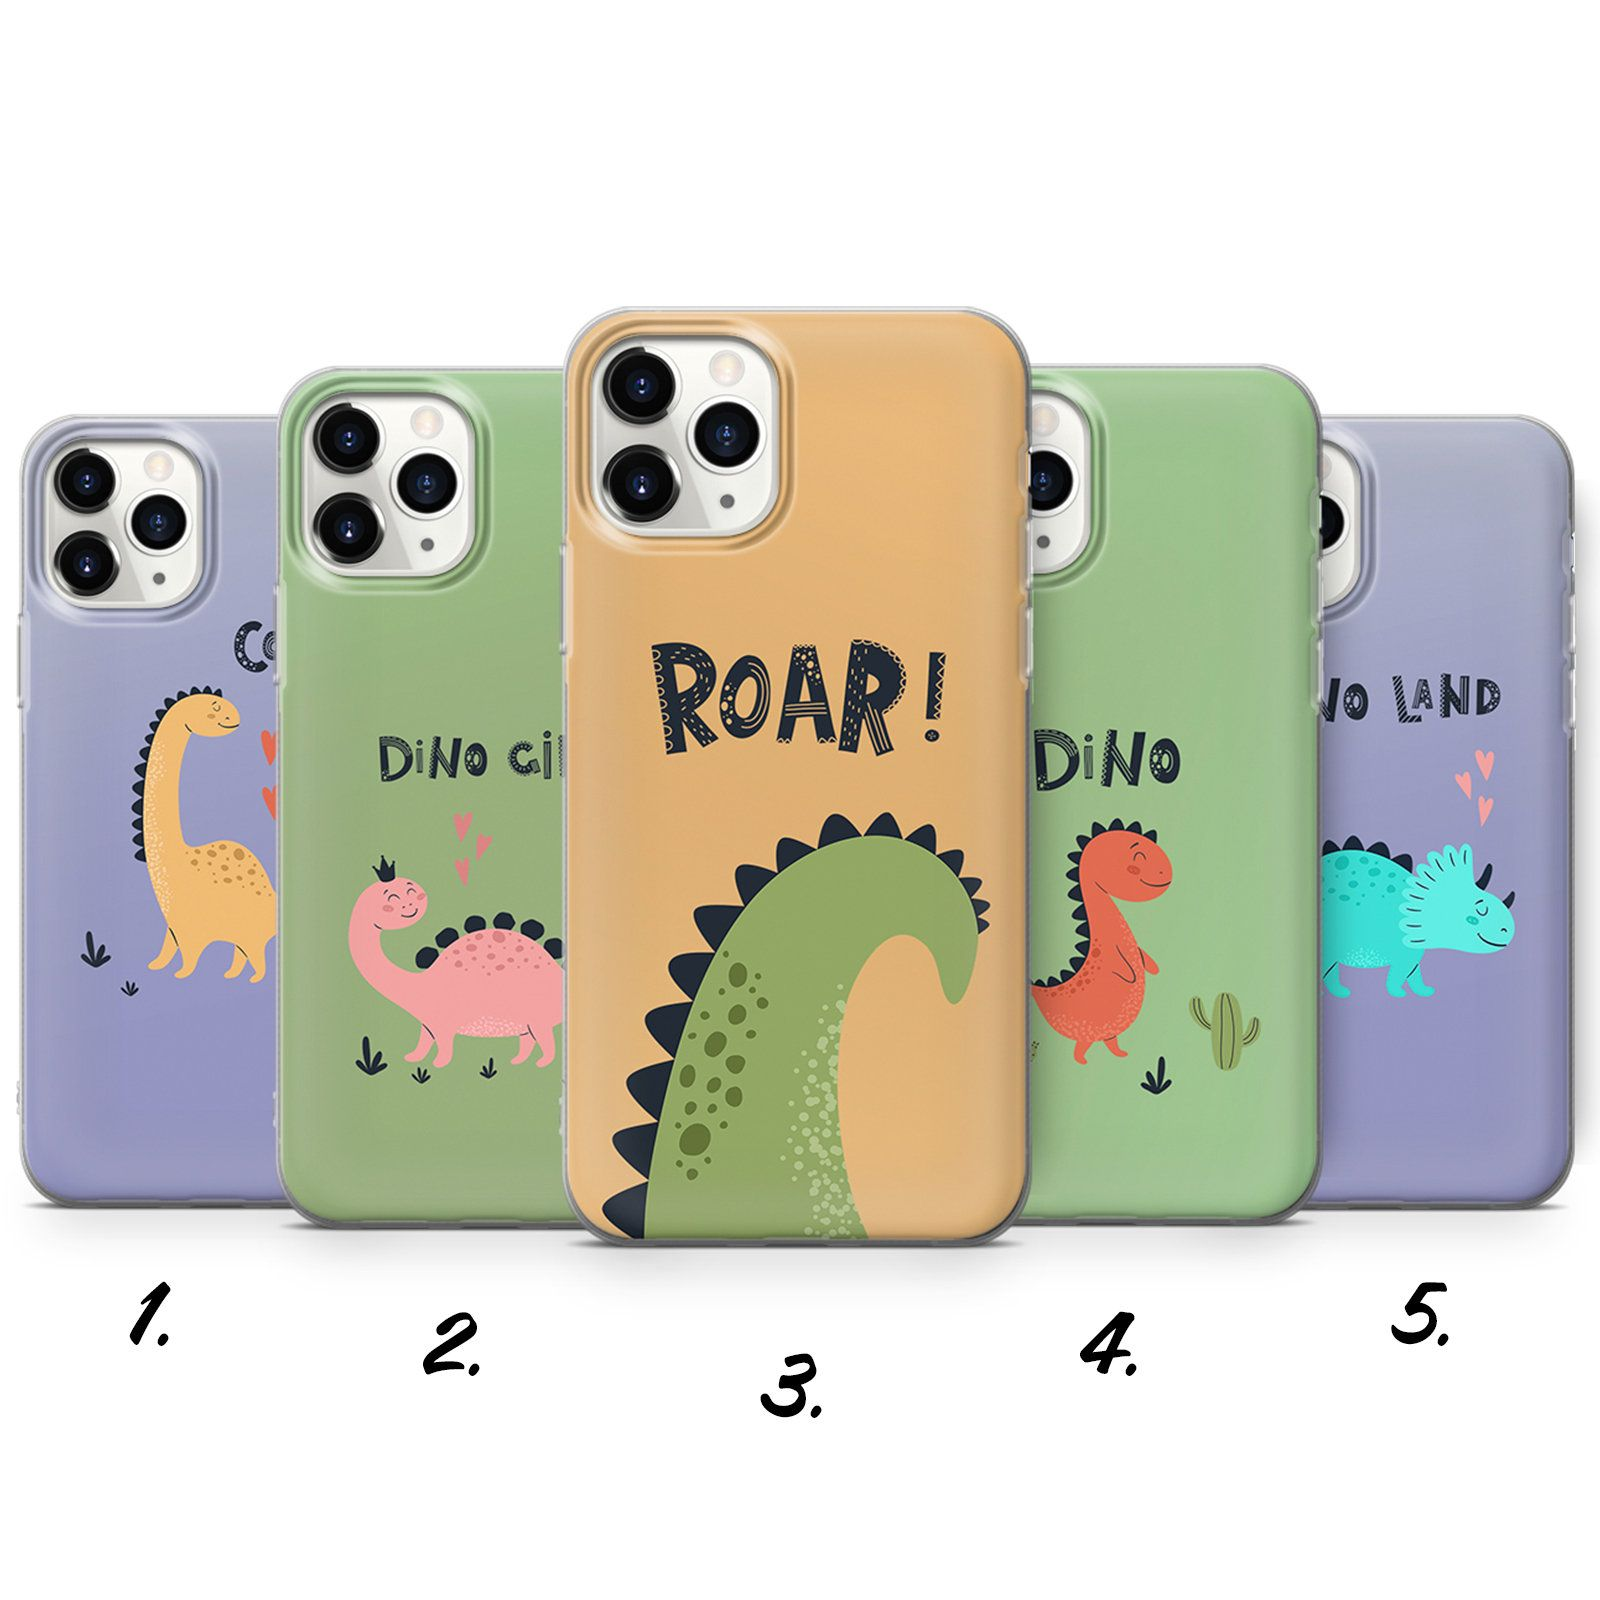 Dino Phone Case Cute Dinosaur Cover For Iphone 7 8 Xs Xr Etsy In 2021 Phone Cases Cute Dinosaur Case